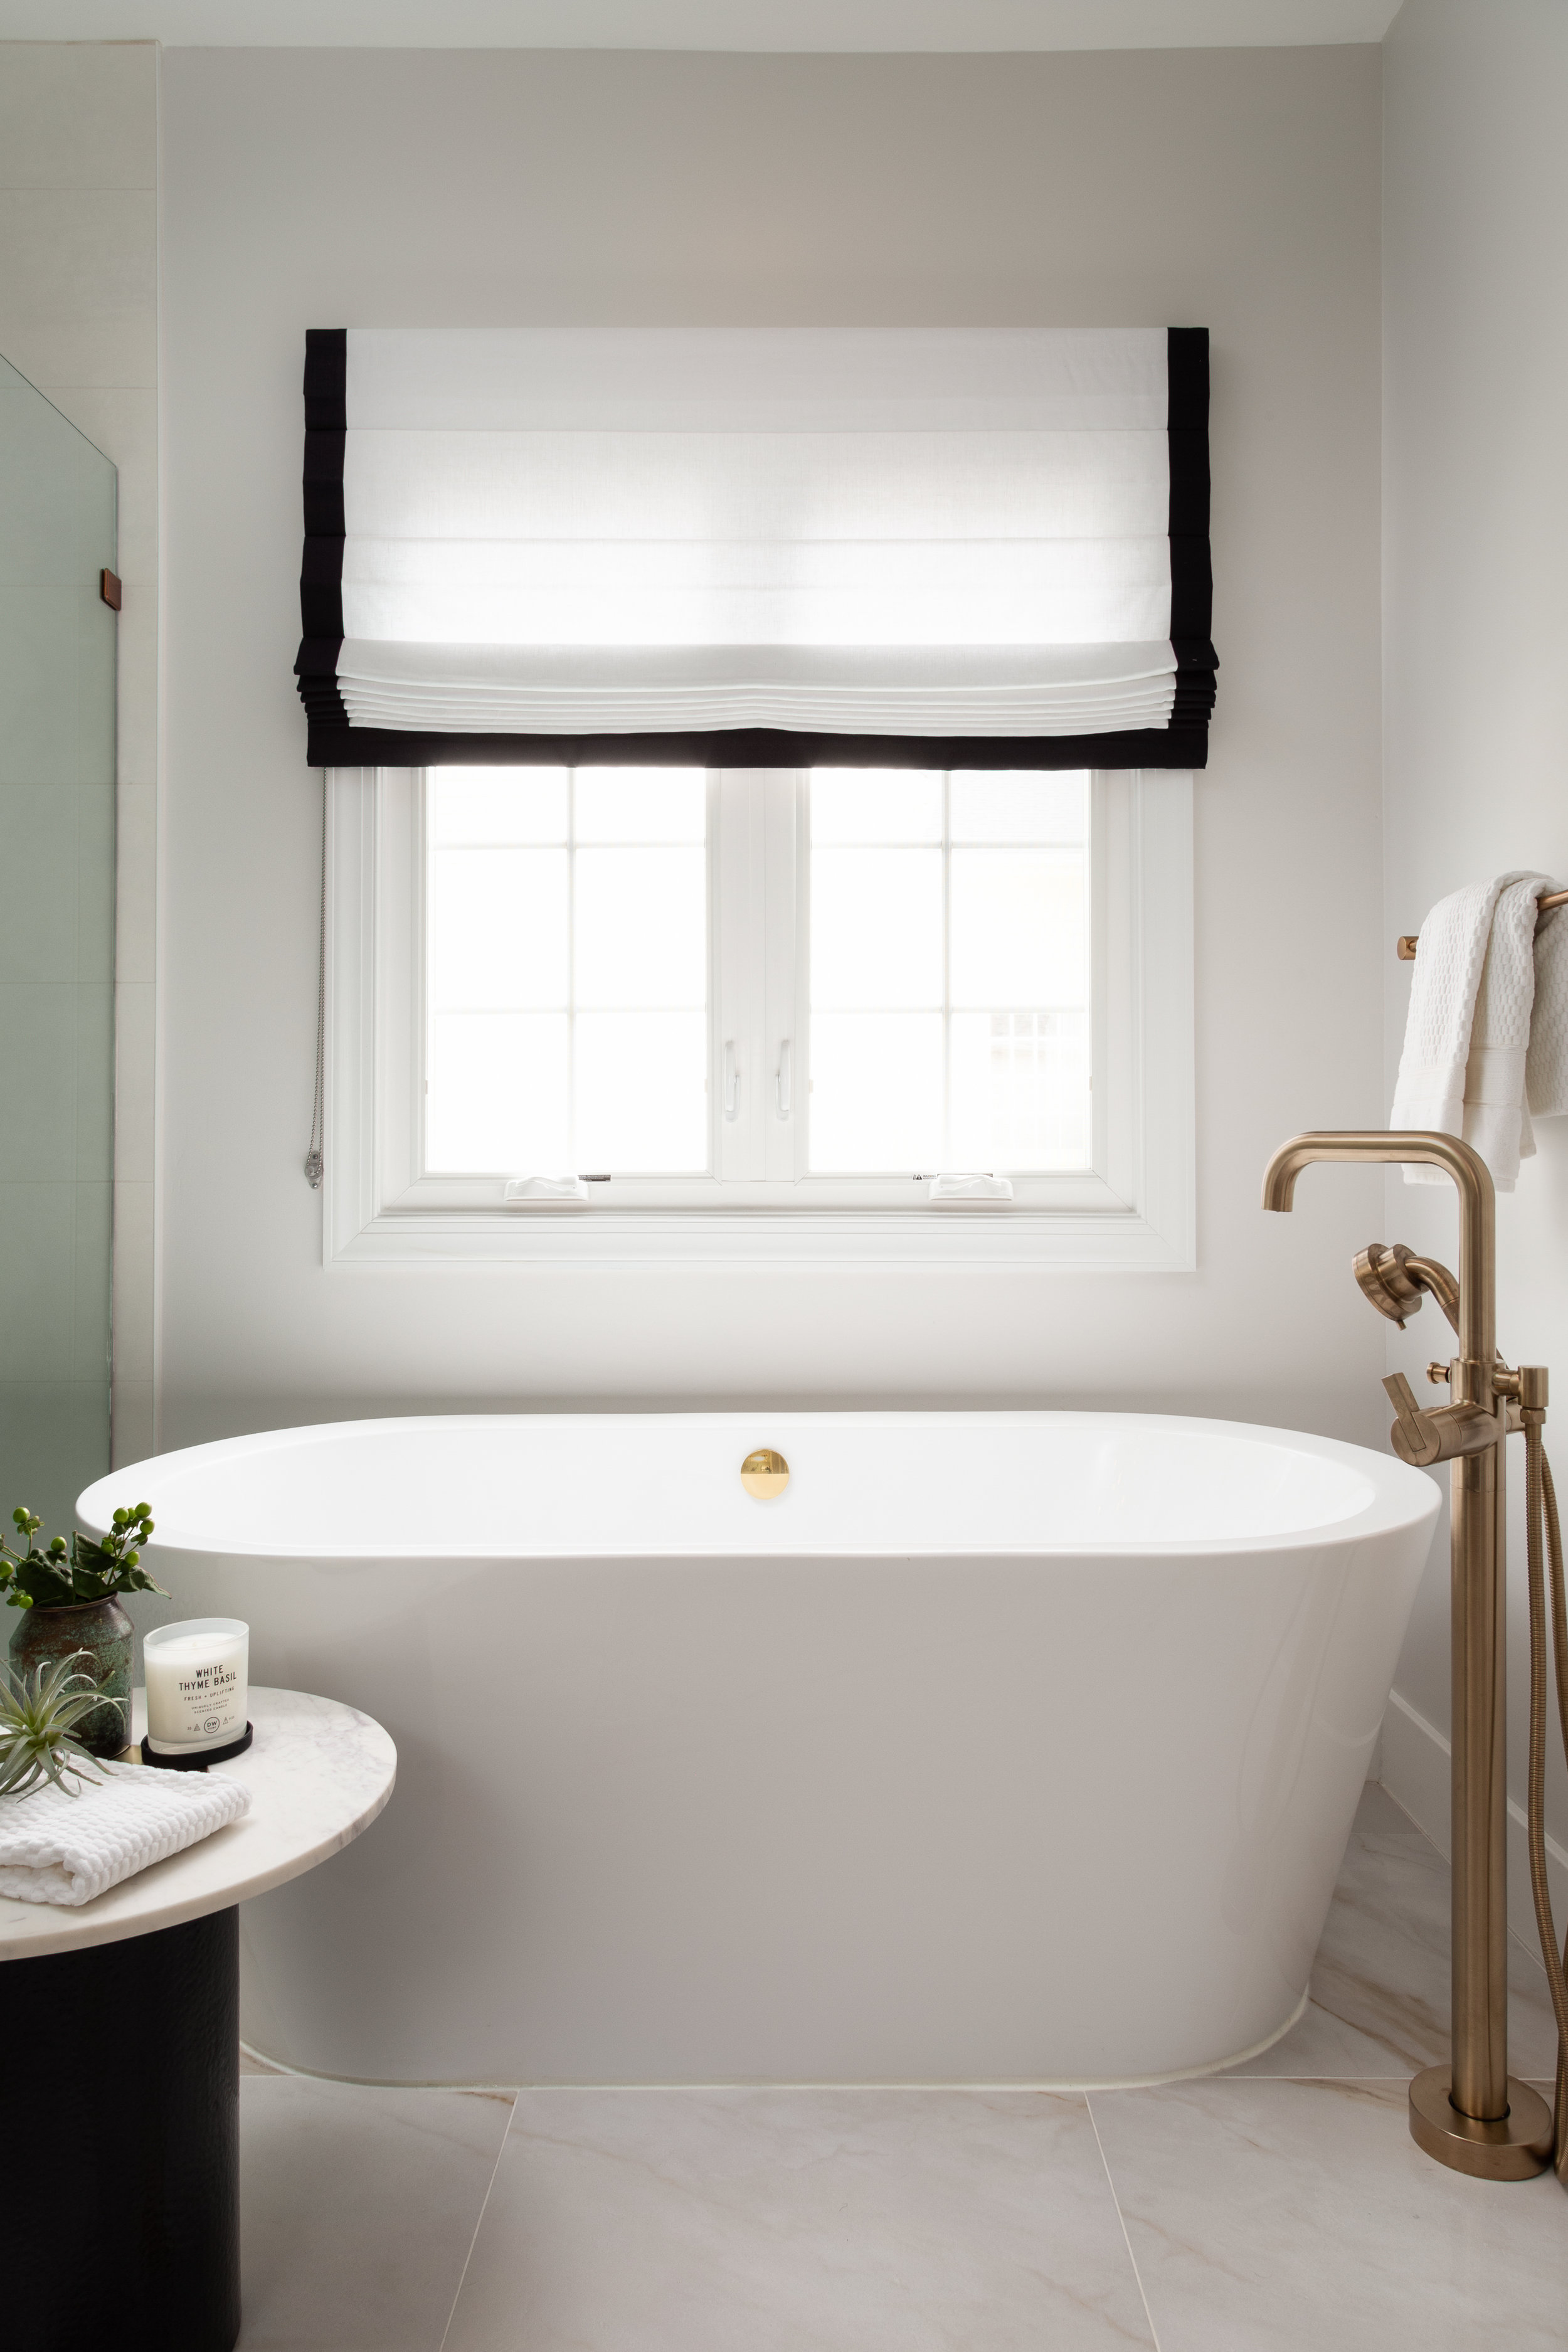 This room wouldn't be complete without a free-standing soaking tub beneath it's window. We added some linen roman shades for privacy with a black border to tie in with the vanity.